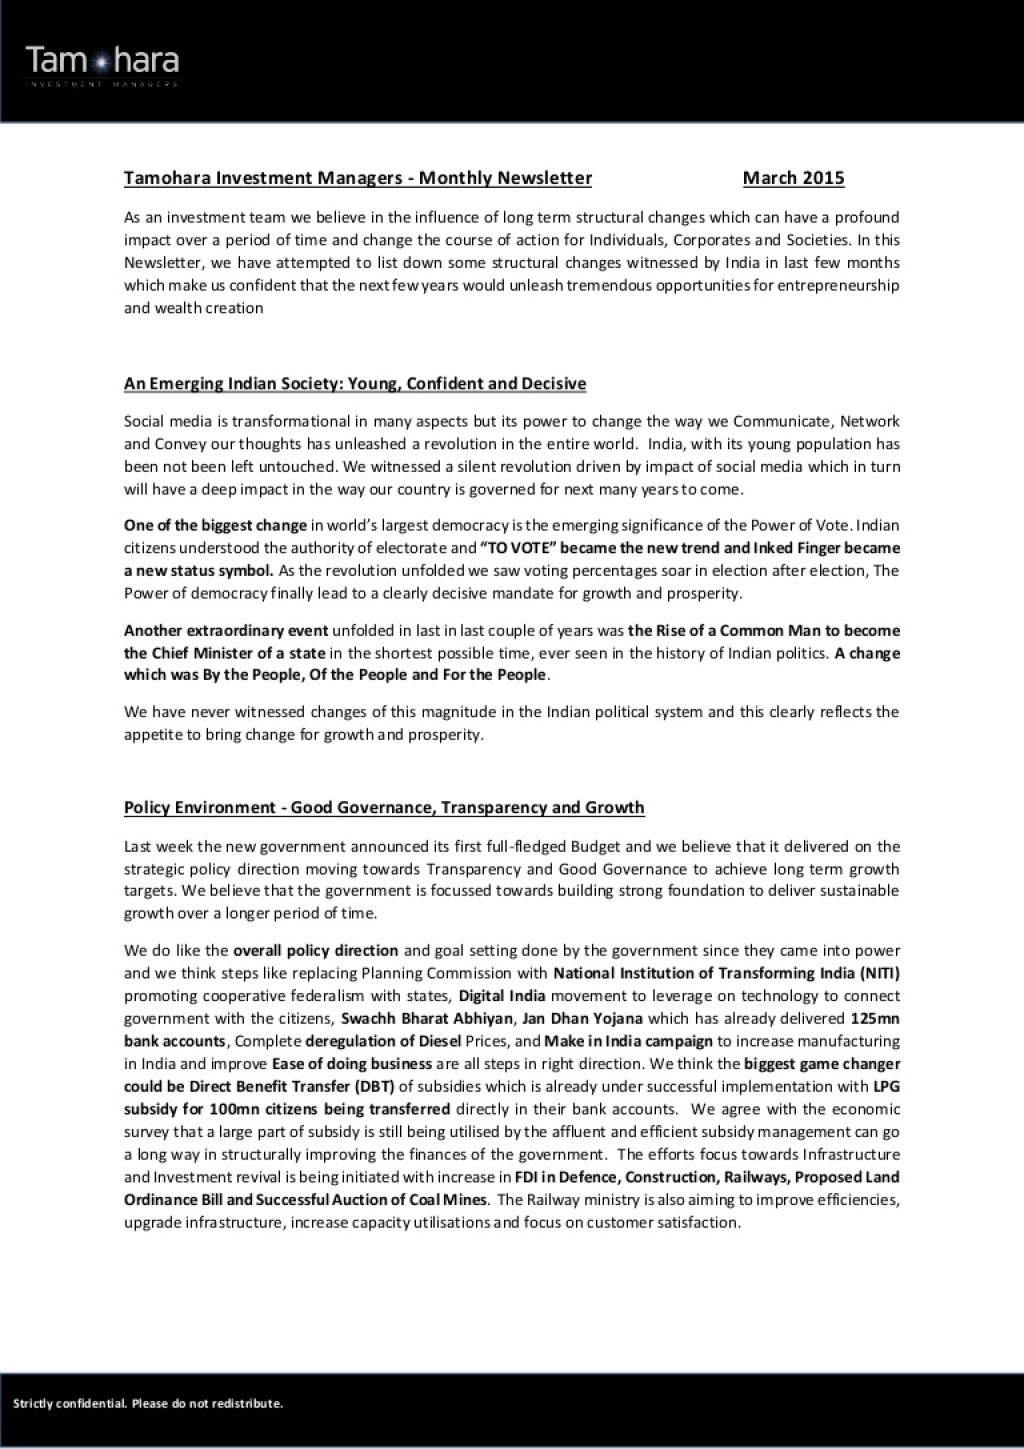 012 Essay Example How To Make An Longer Tamoharainvestmentnewsletter Mar2015 Conversion Gate01 Thumbnail Unusual Word Count With Periods Period Trick Google Docs Large